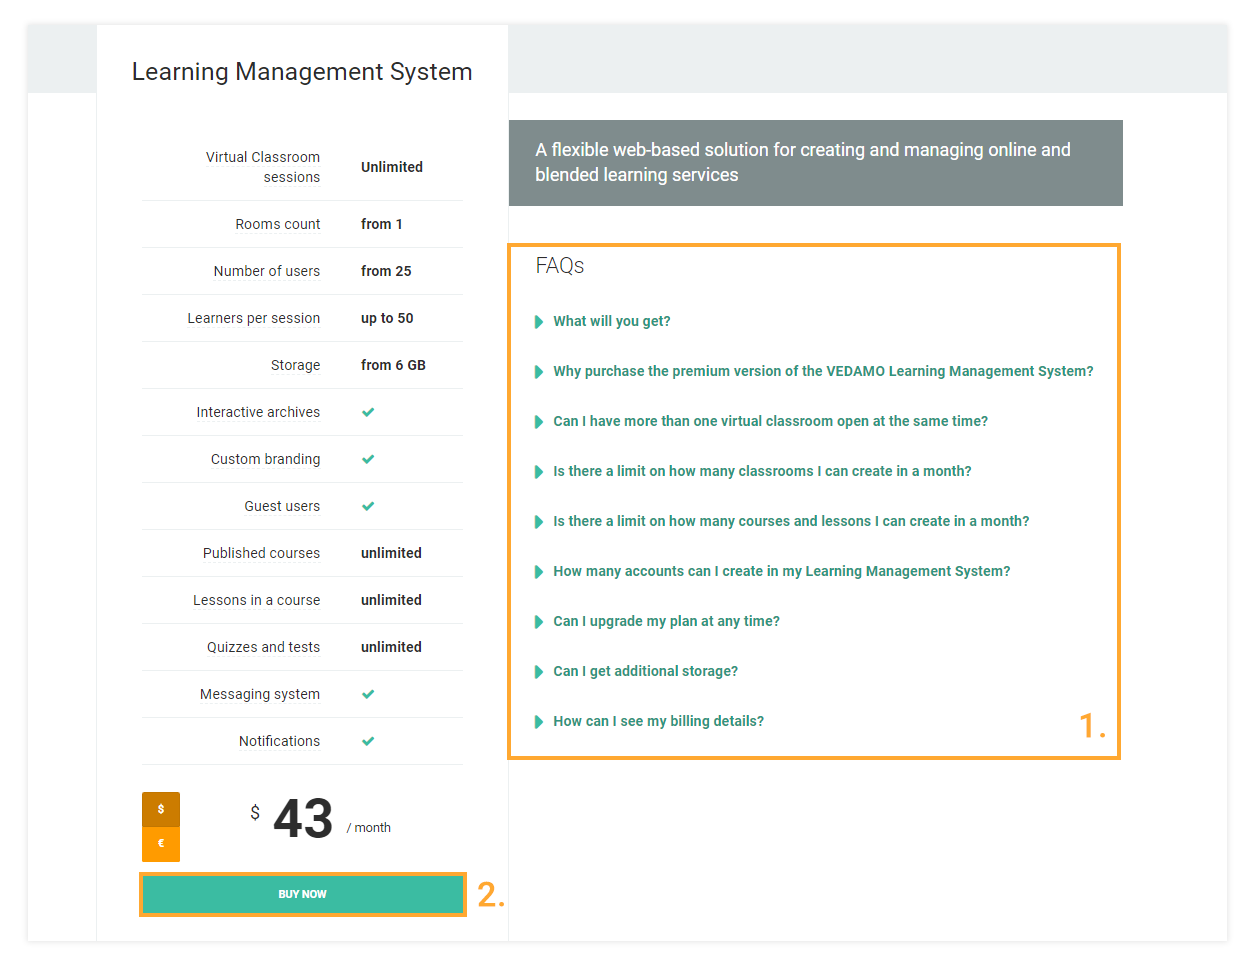 Press Select to Buy now for Vedamo's Premium Learning Management Sytem plan